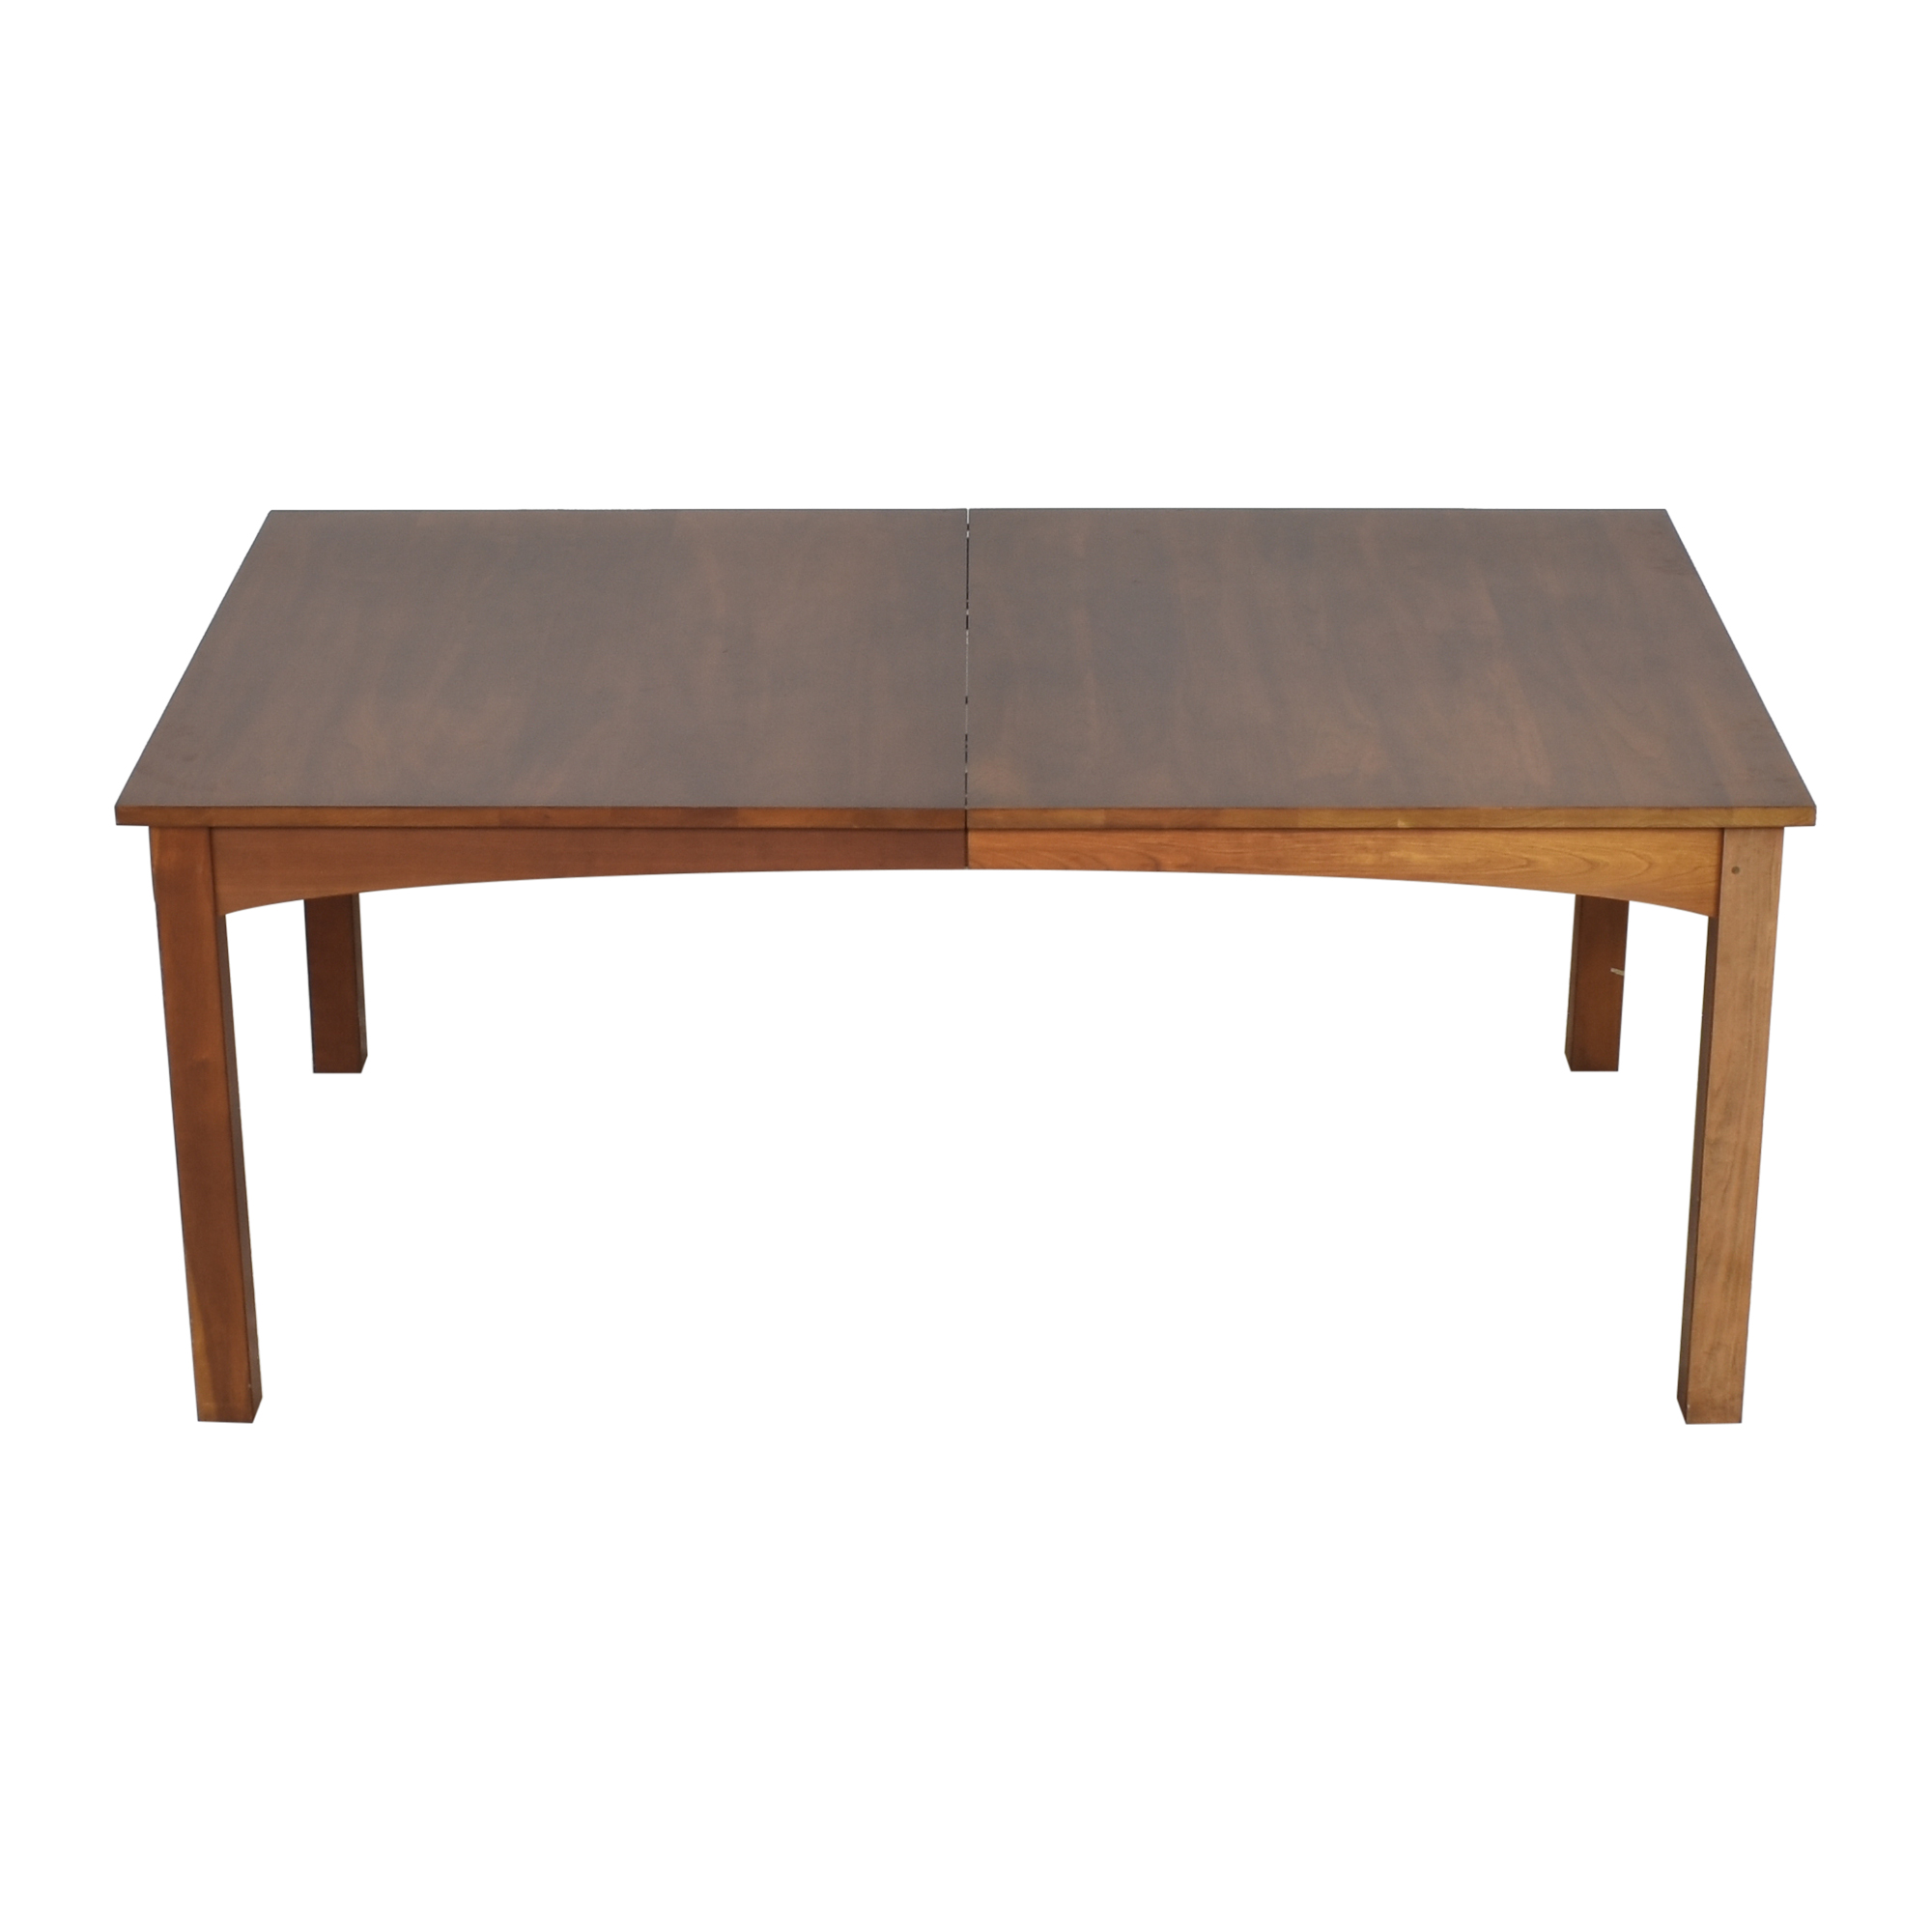 Stickley Furniture Stickley Mission Extendable Dining Table second hand